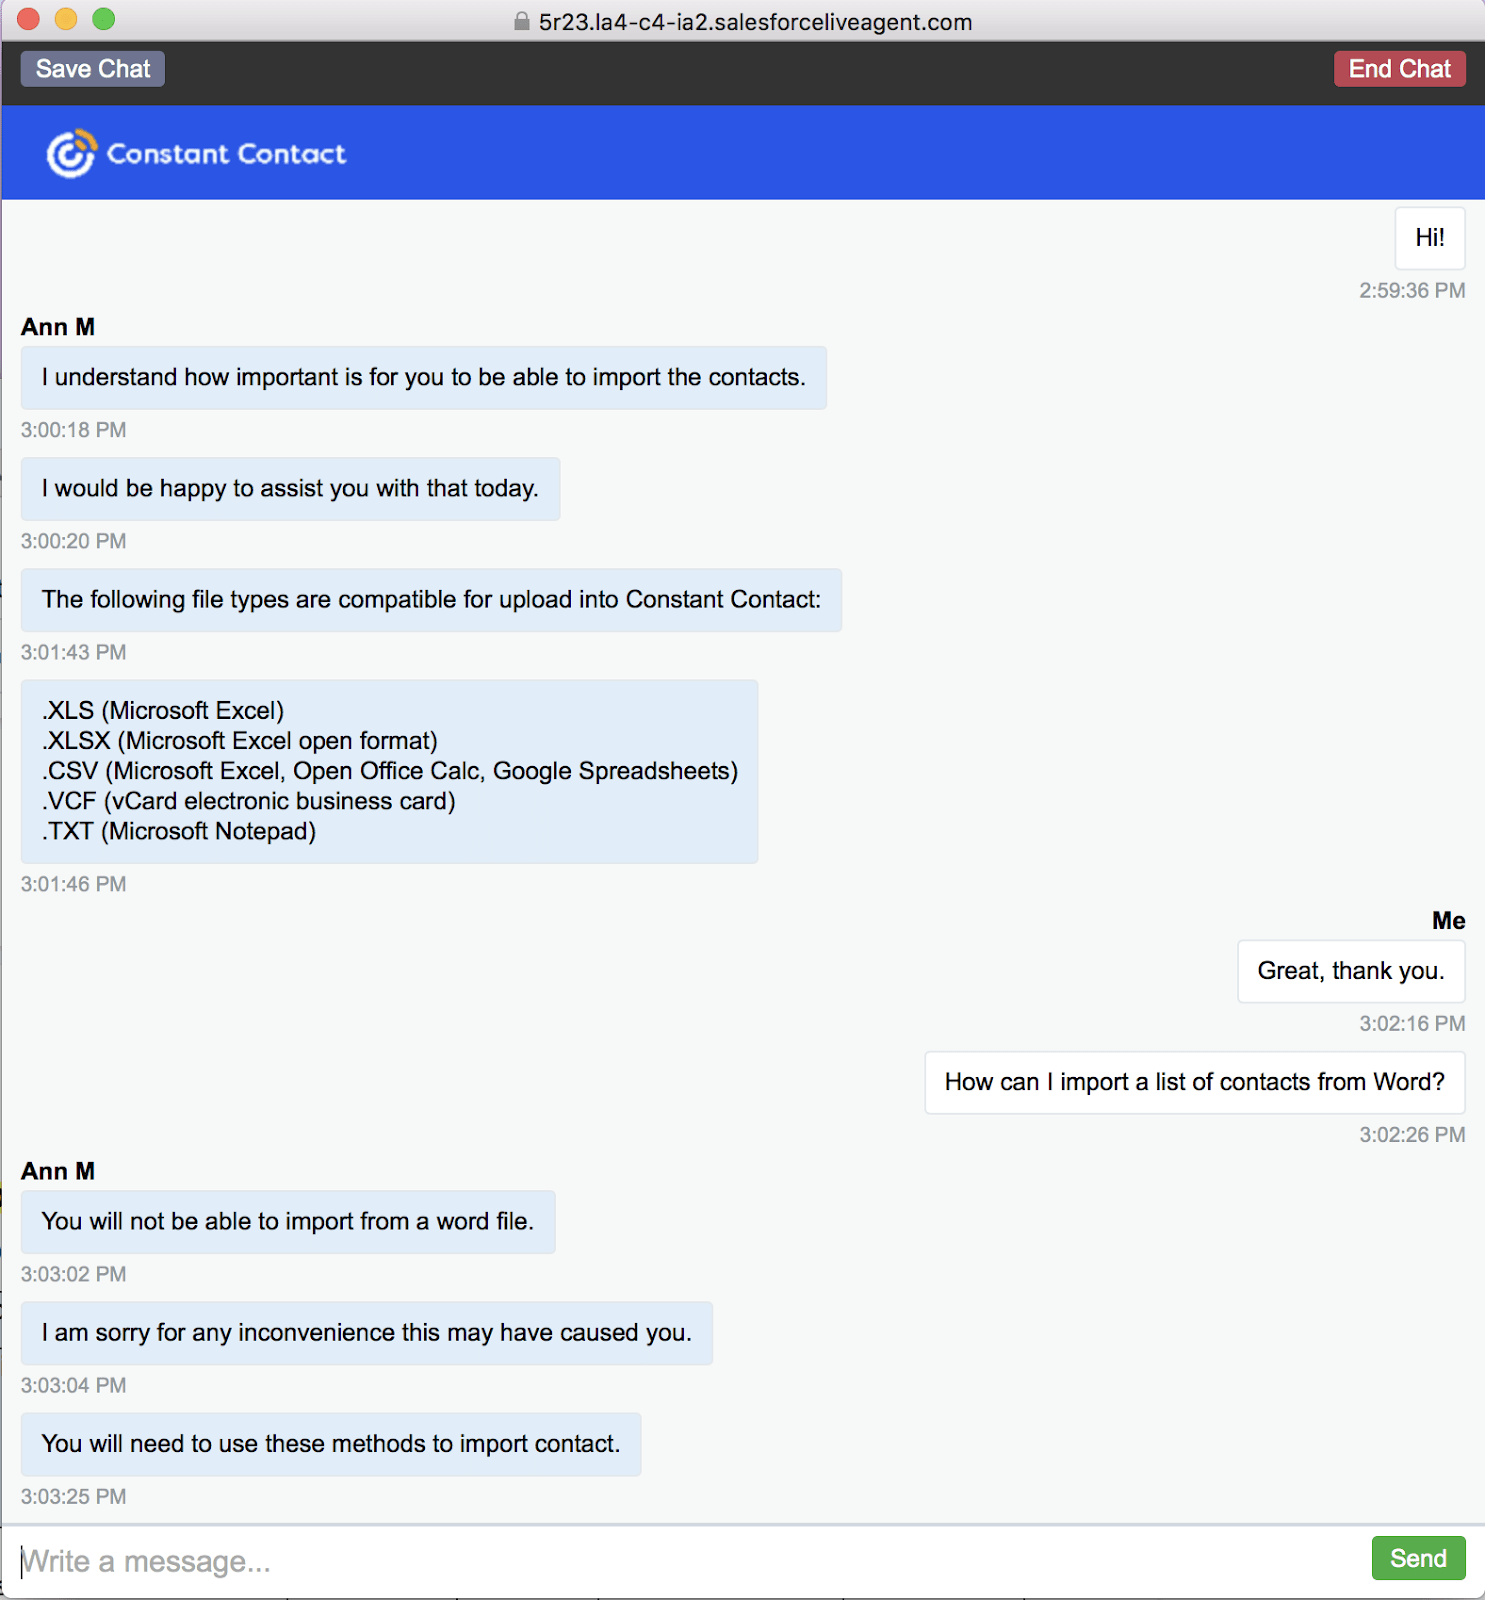 Constant Contact live chat support